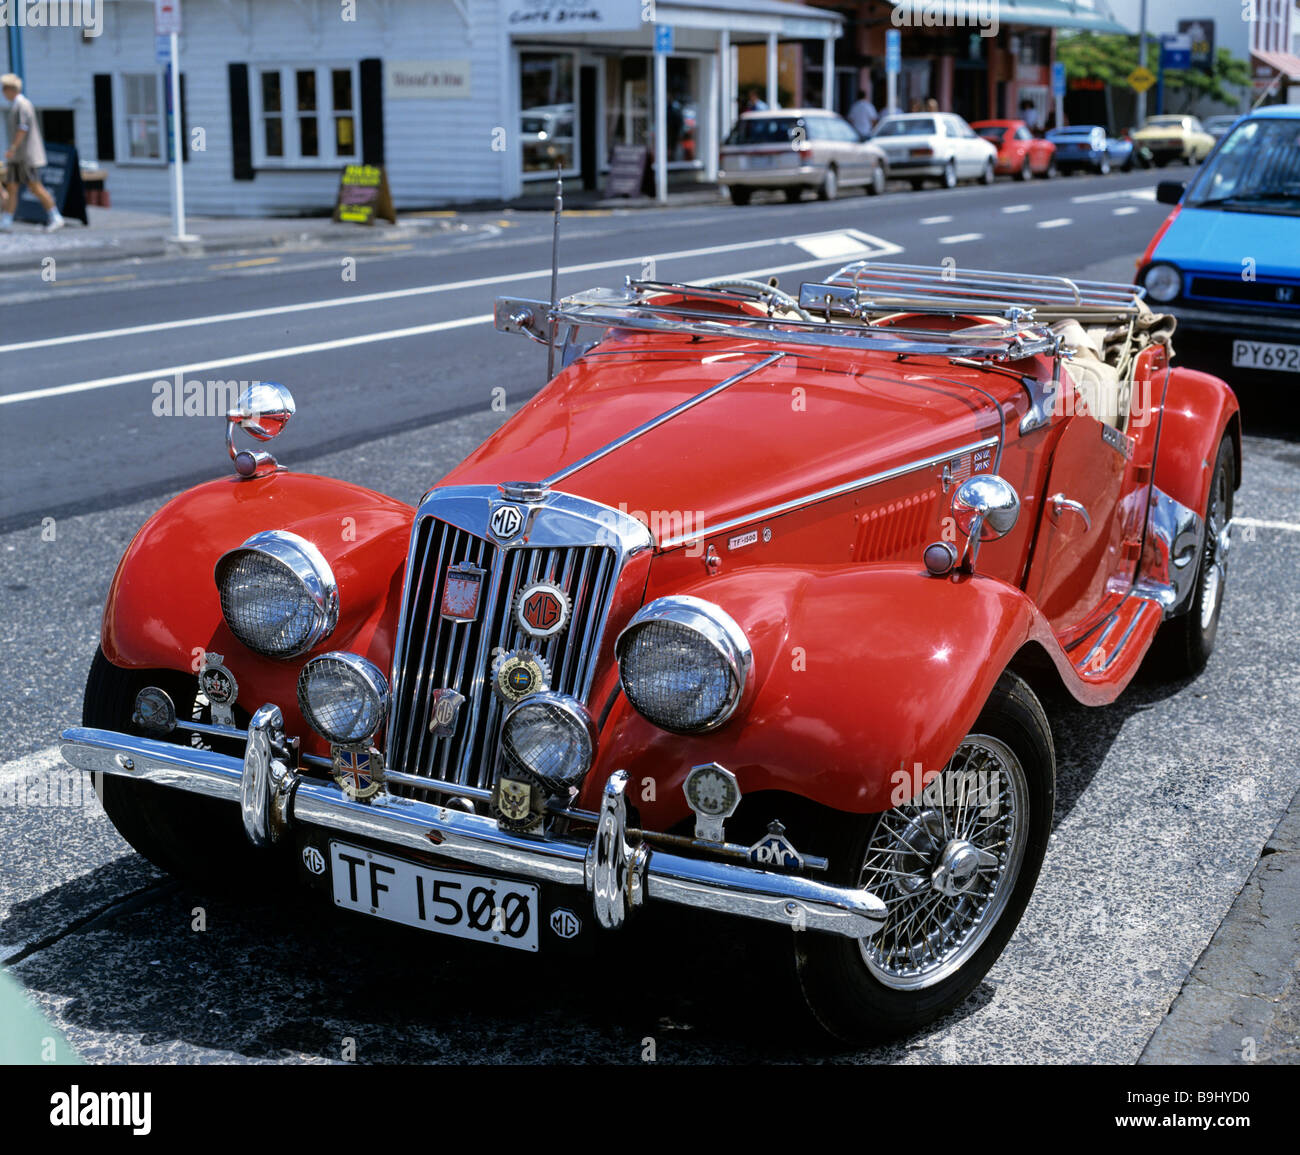 MG TF 1500, vintage car, sports car in Auckland, North Island, New Zealand - Stock Image